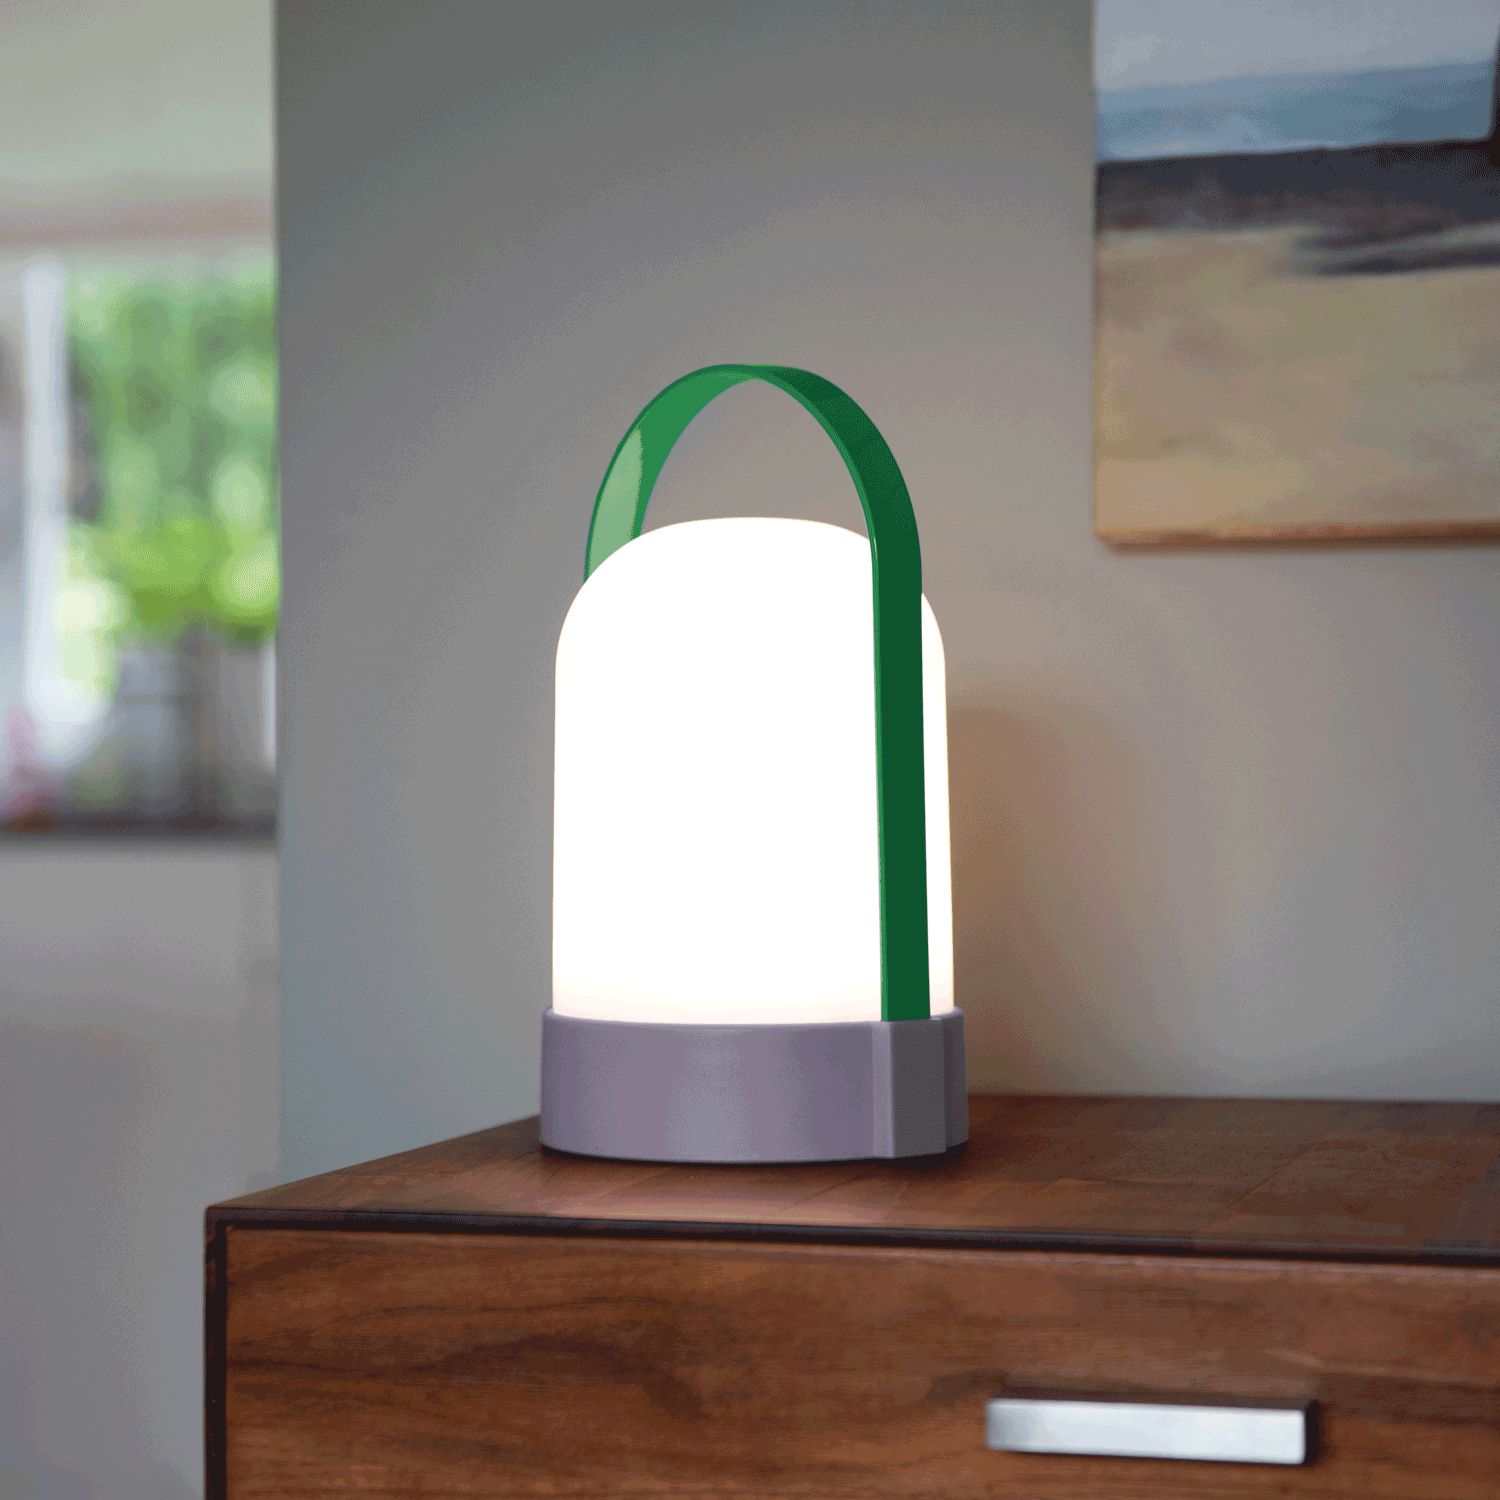 URI LED-lamp Met Handvat - Lila/groen - Remember